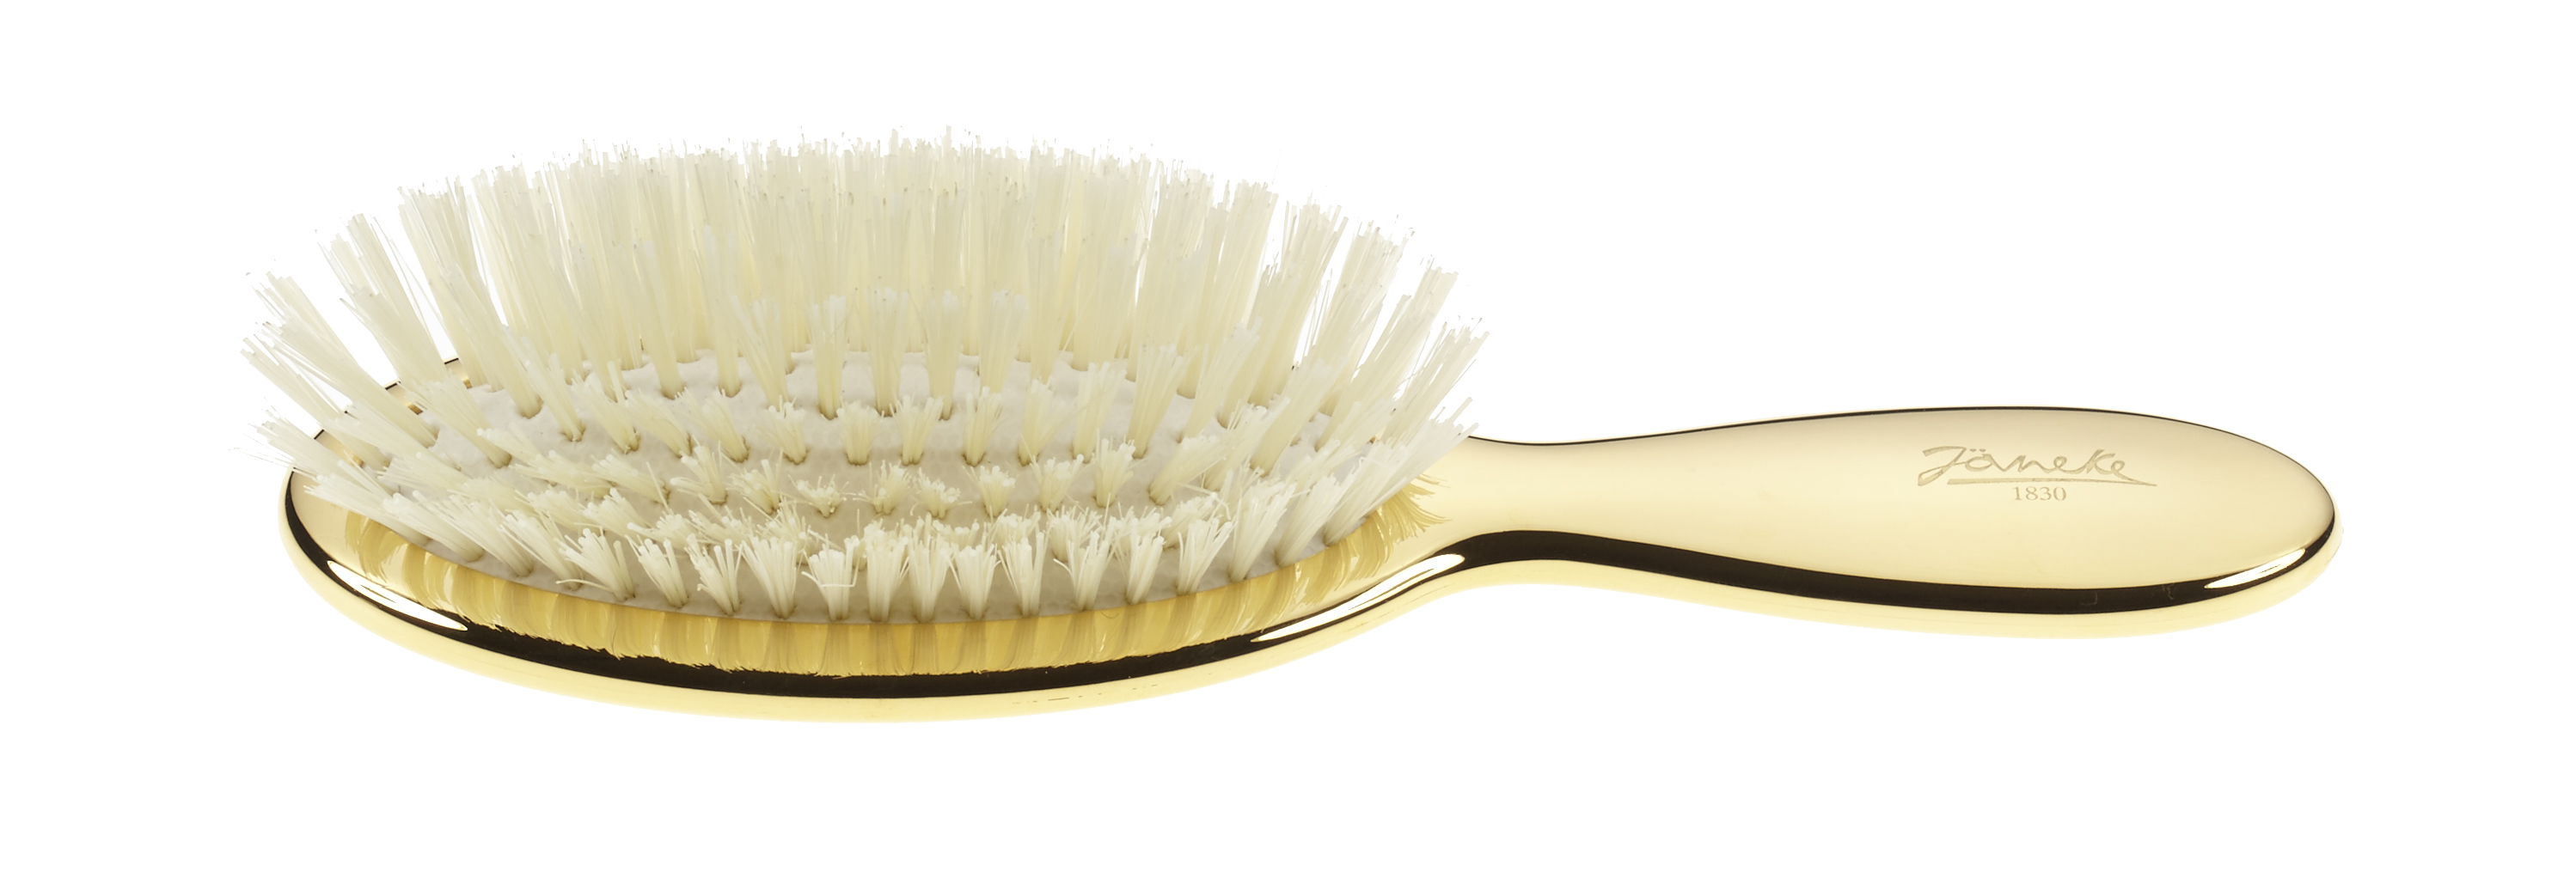 Golden brush, small, with white bristles and nylon reinforcemente Cod. AUSP21SF BIA